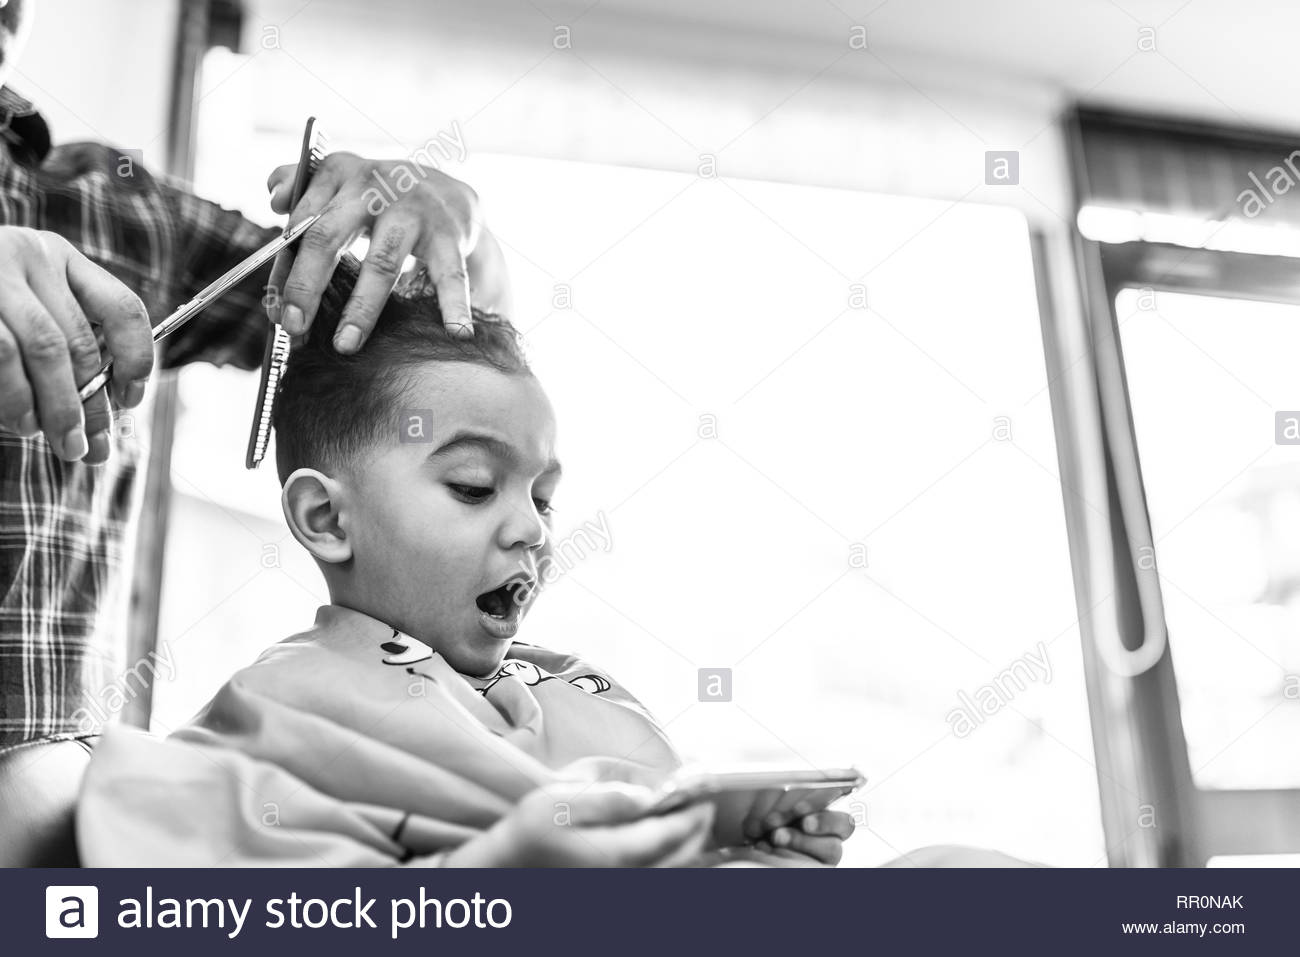 Cute Little Boy Getting a Hair Cut in a Barber Shop or Salon. Beauty Concept. - Stock Image